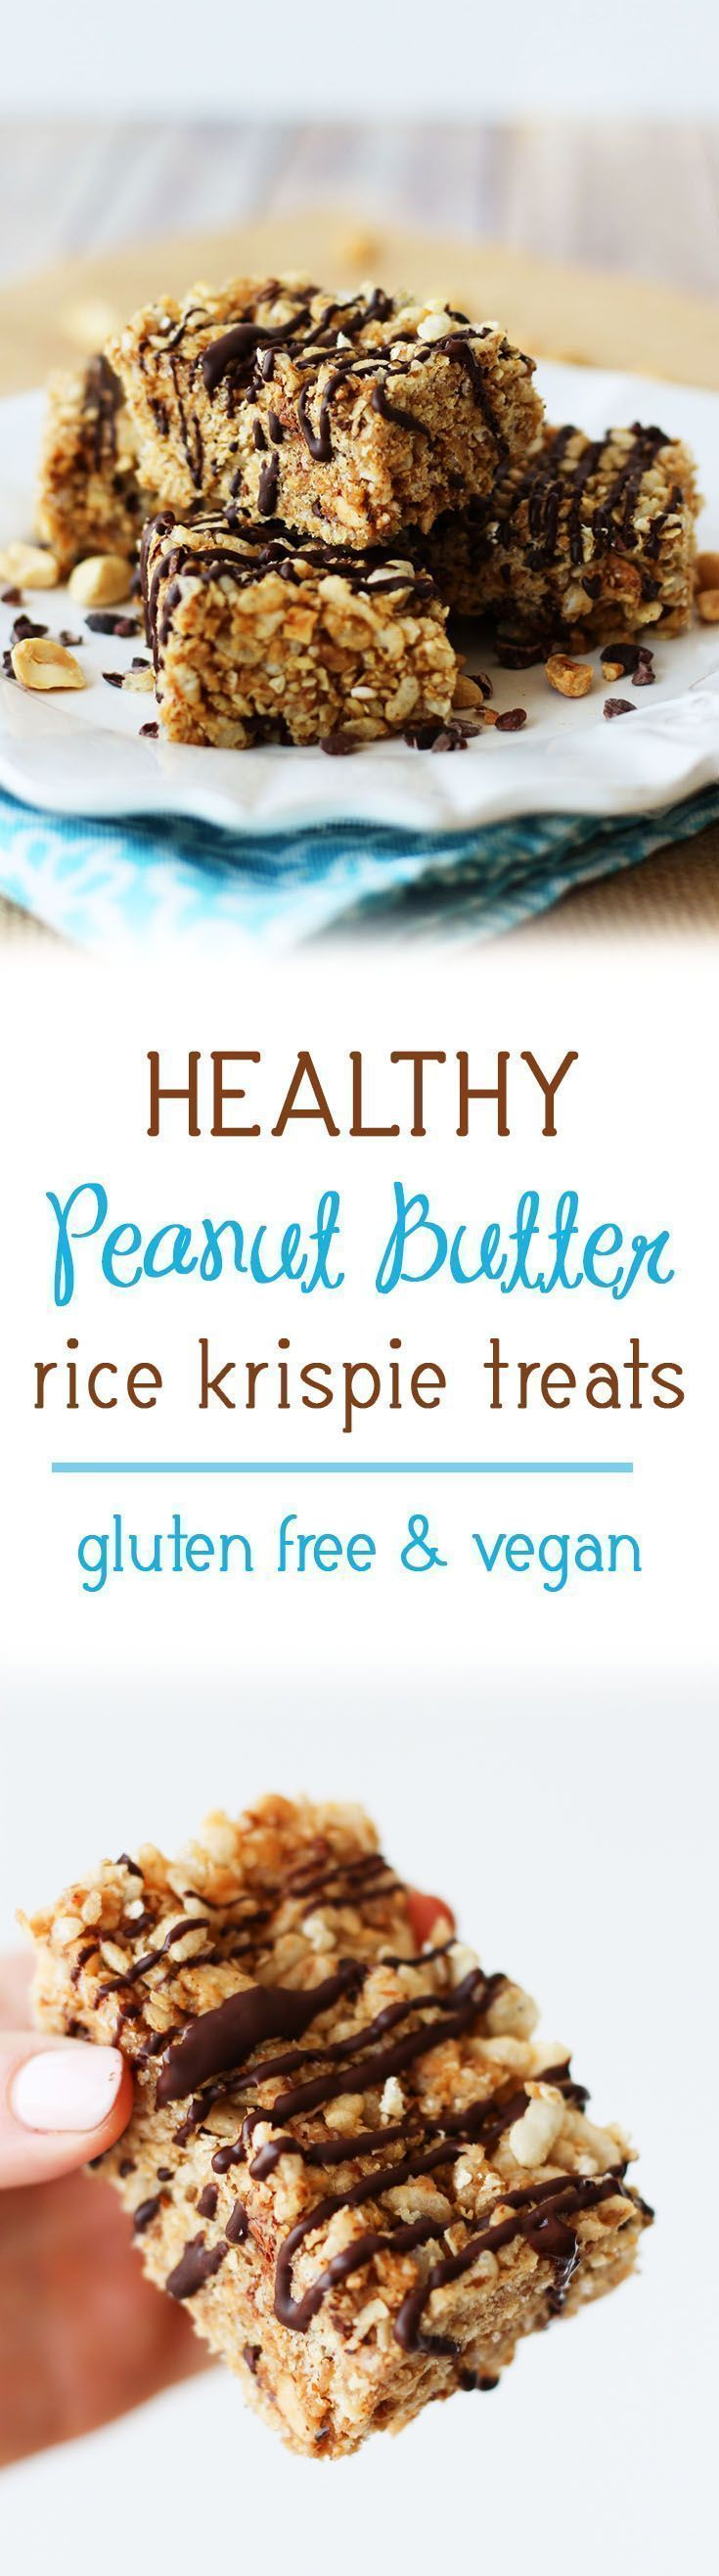 These healthy peanut butter rice krispie treats are perfect after work or school snacks and were created in partnership with Peanut Bureau . They're gluten free, vegan, and totally marshmallow-free, yet they're super fun for adults and kids, ali